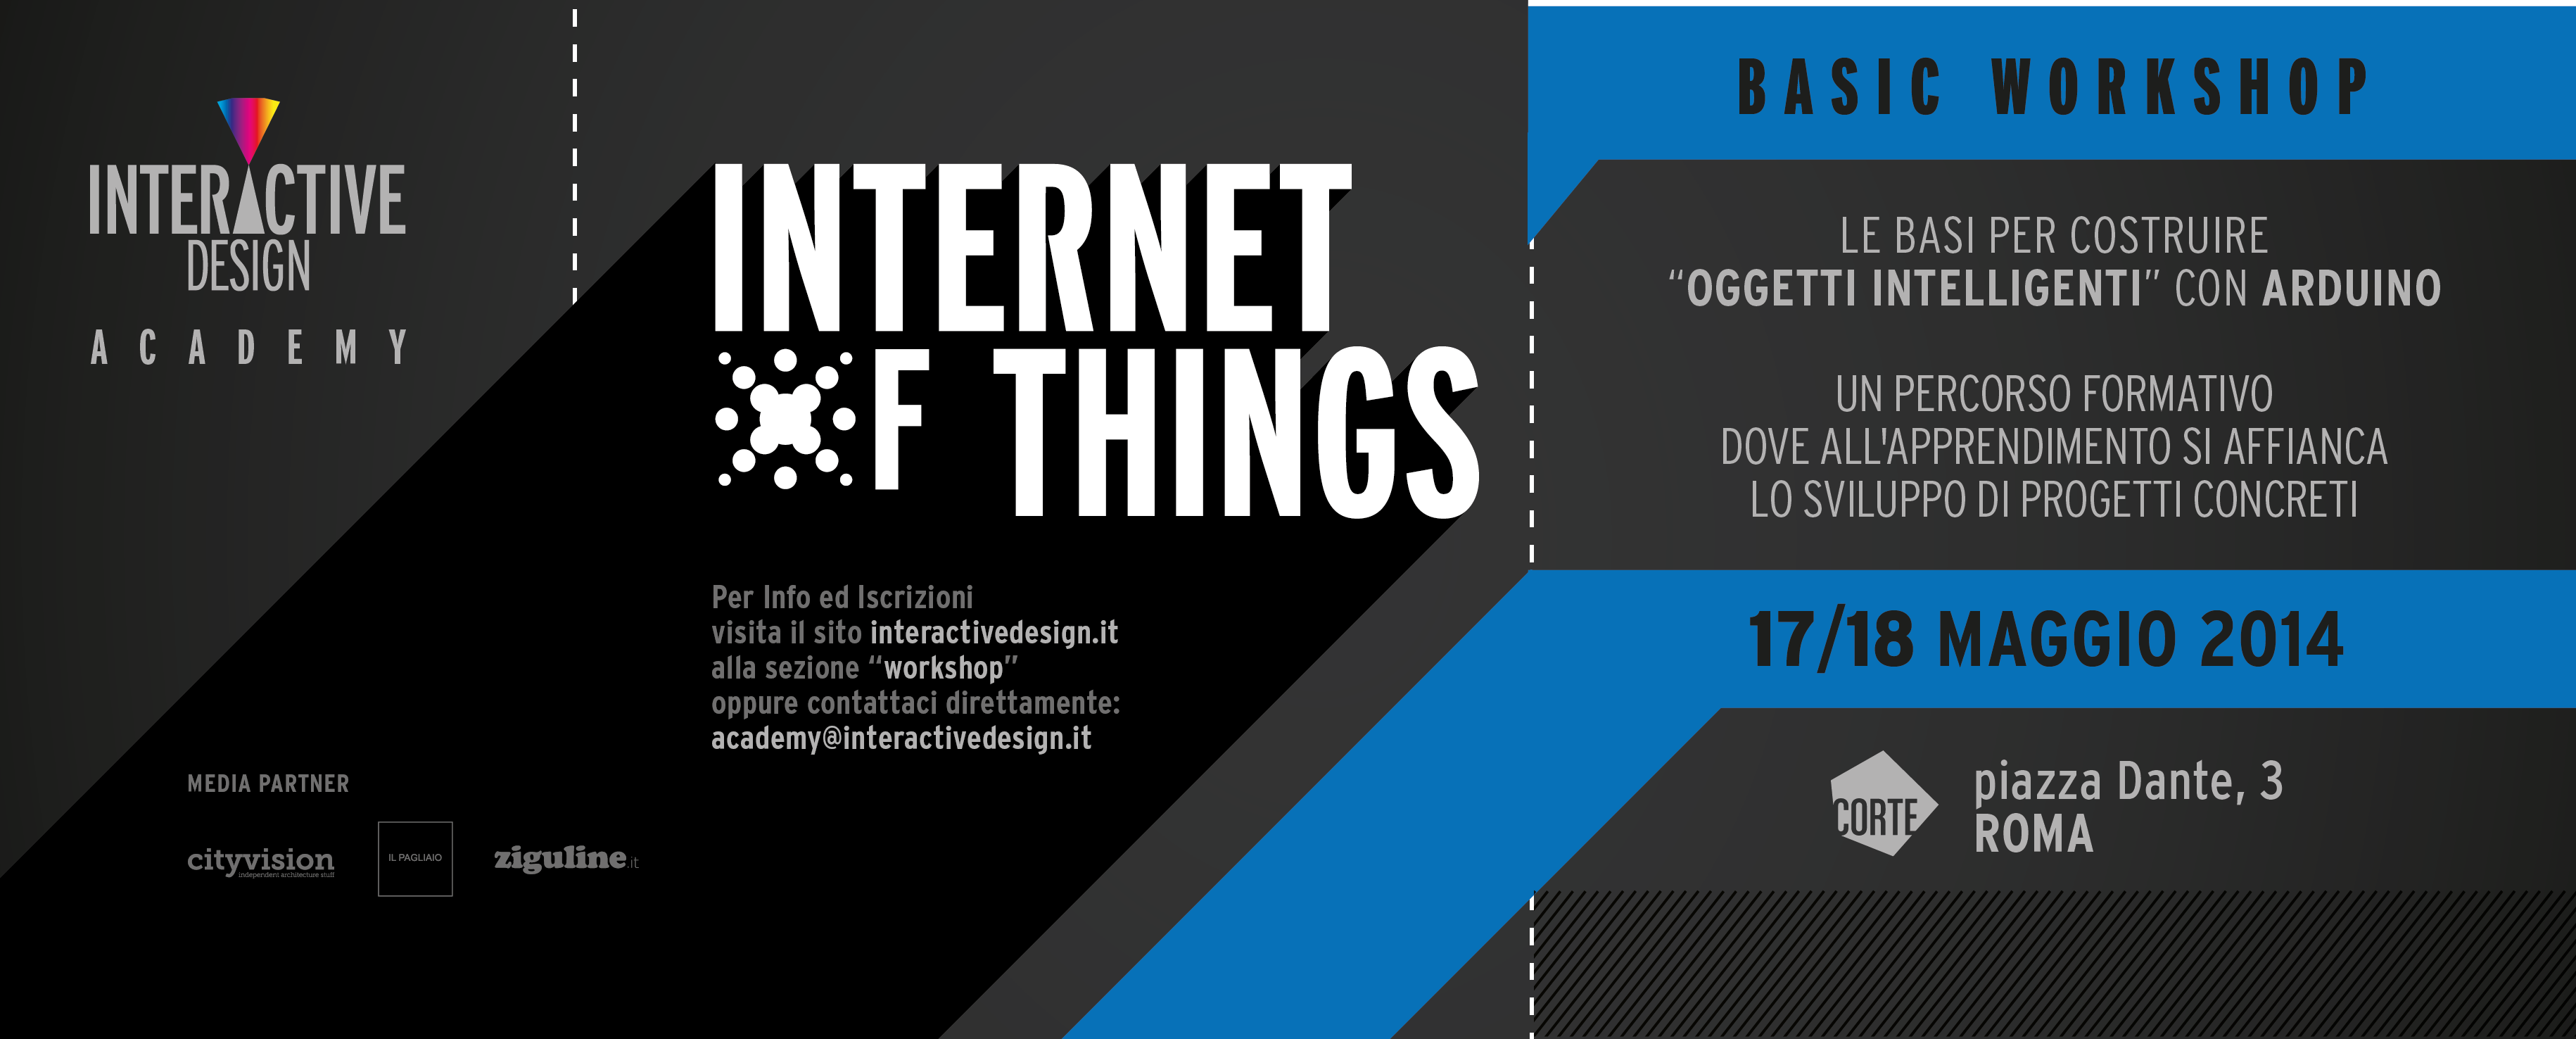 INTERNET OF THINGS - Basic Workshop